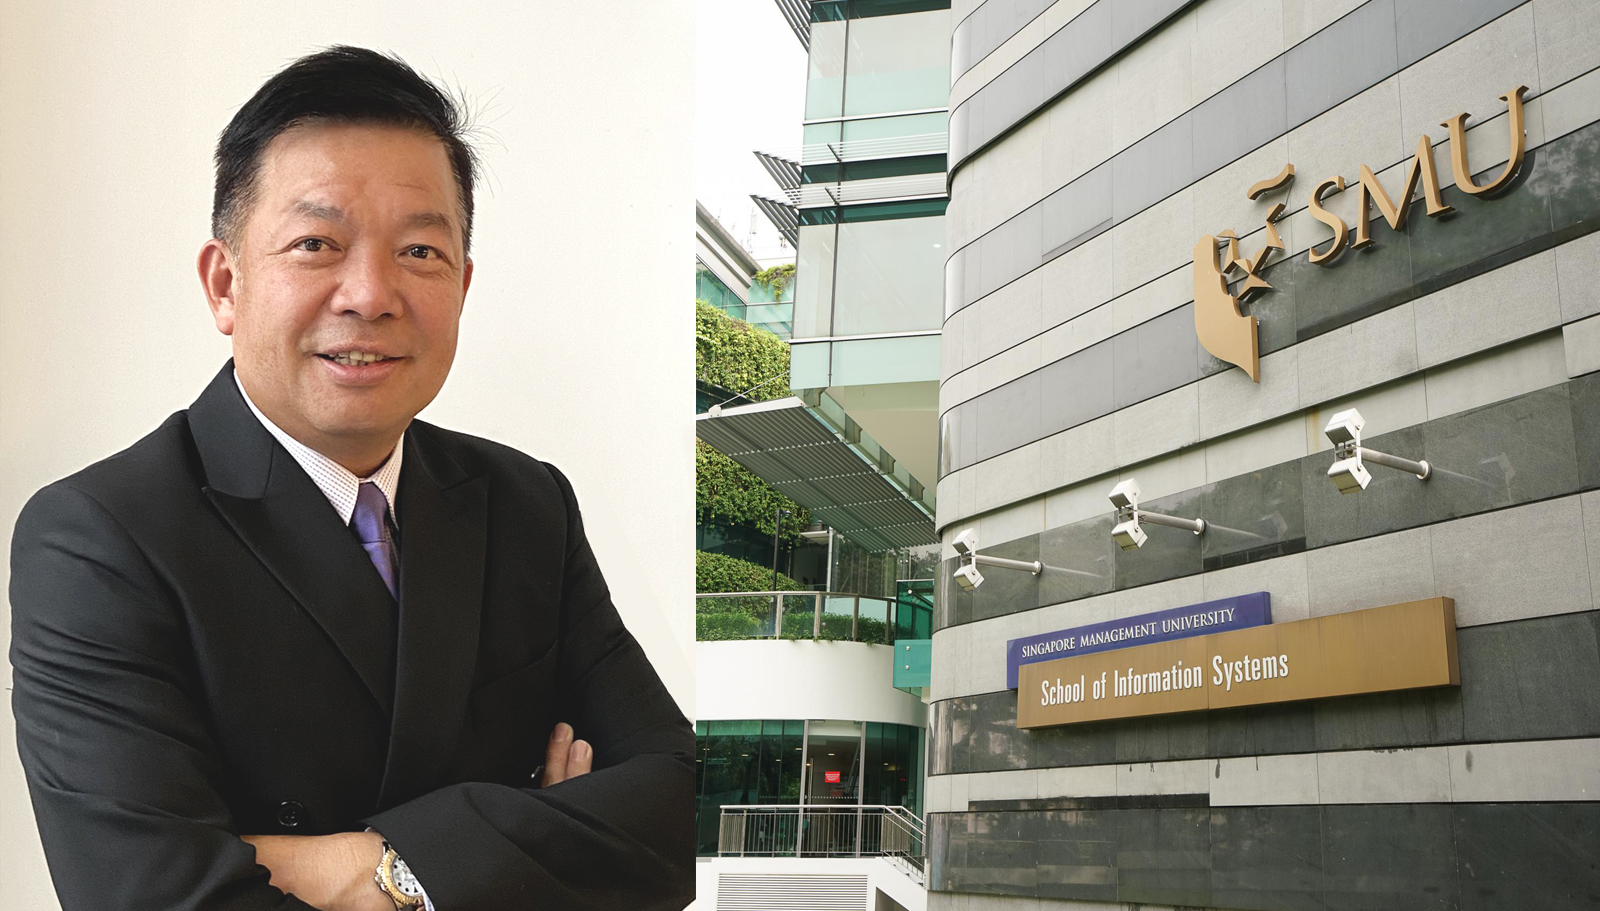 School confers title in recognition of Mr Yap's significant contributions